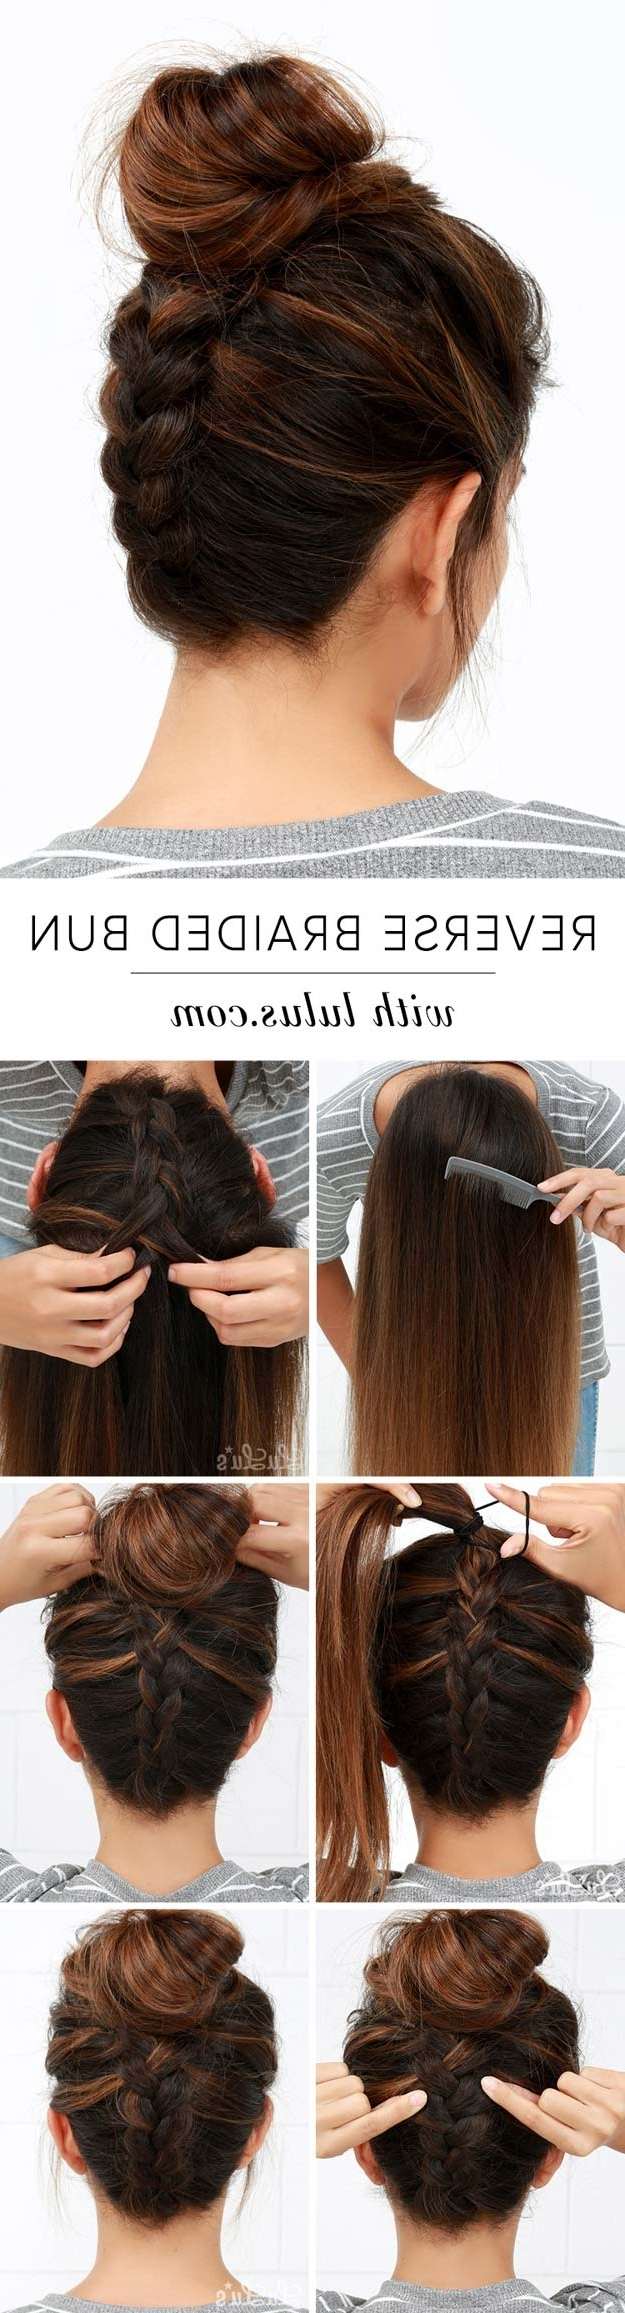 41 Diy Cool Easy Hairstyles That Real People Can Do At Home 10+ Adorable Put Up Hairstyles For Medium Length Hair